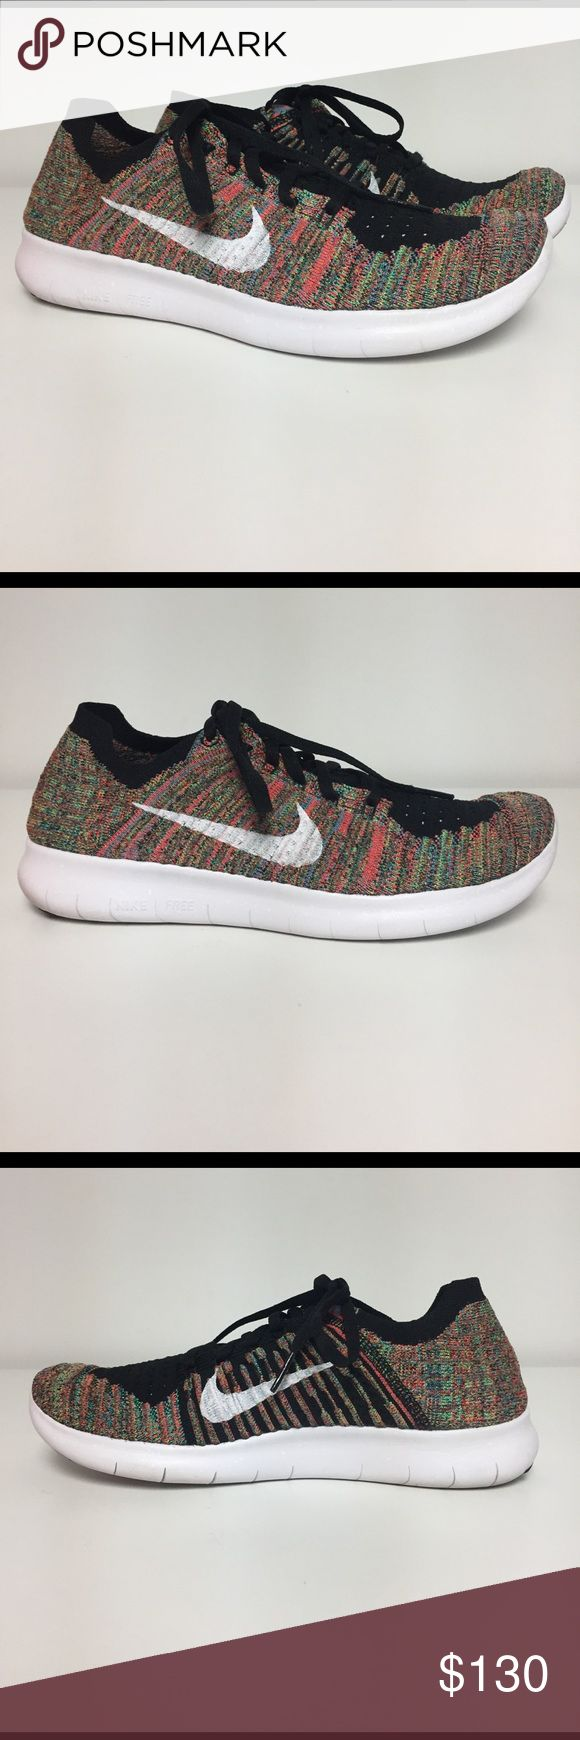 Nike ID Custom Free RN Flyknit Training Shoes Completely customized with Nike ID! Amazing custom shoes that have a great colorful pattern. Leigh's weight and breathable. Men's size 8, fit like a women's 9.5. Brand New shoes.  No box included. No trades. Nike Shoes Athletic Shoes